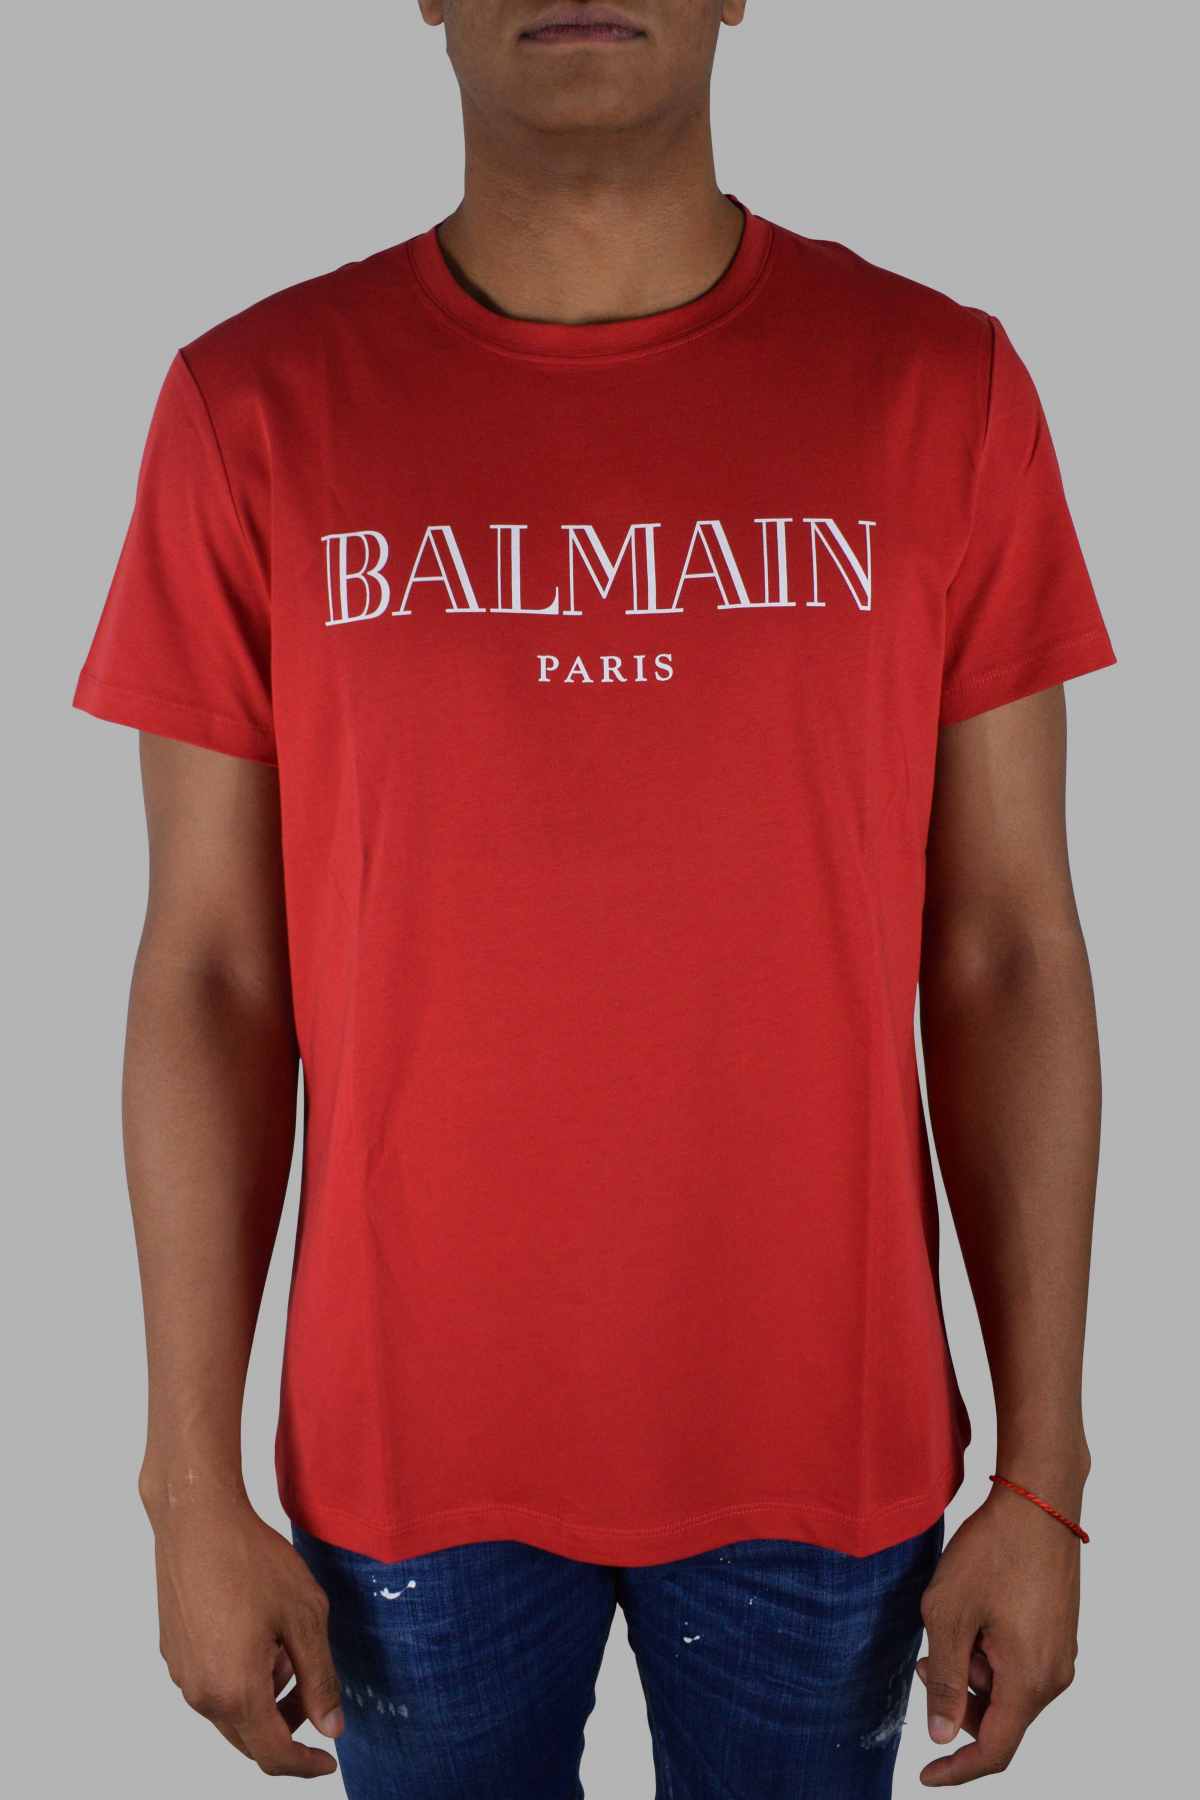 T-shirt Paris Balmain